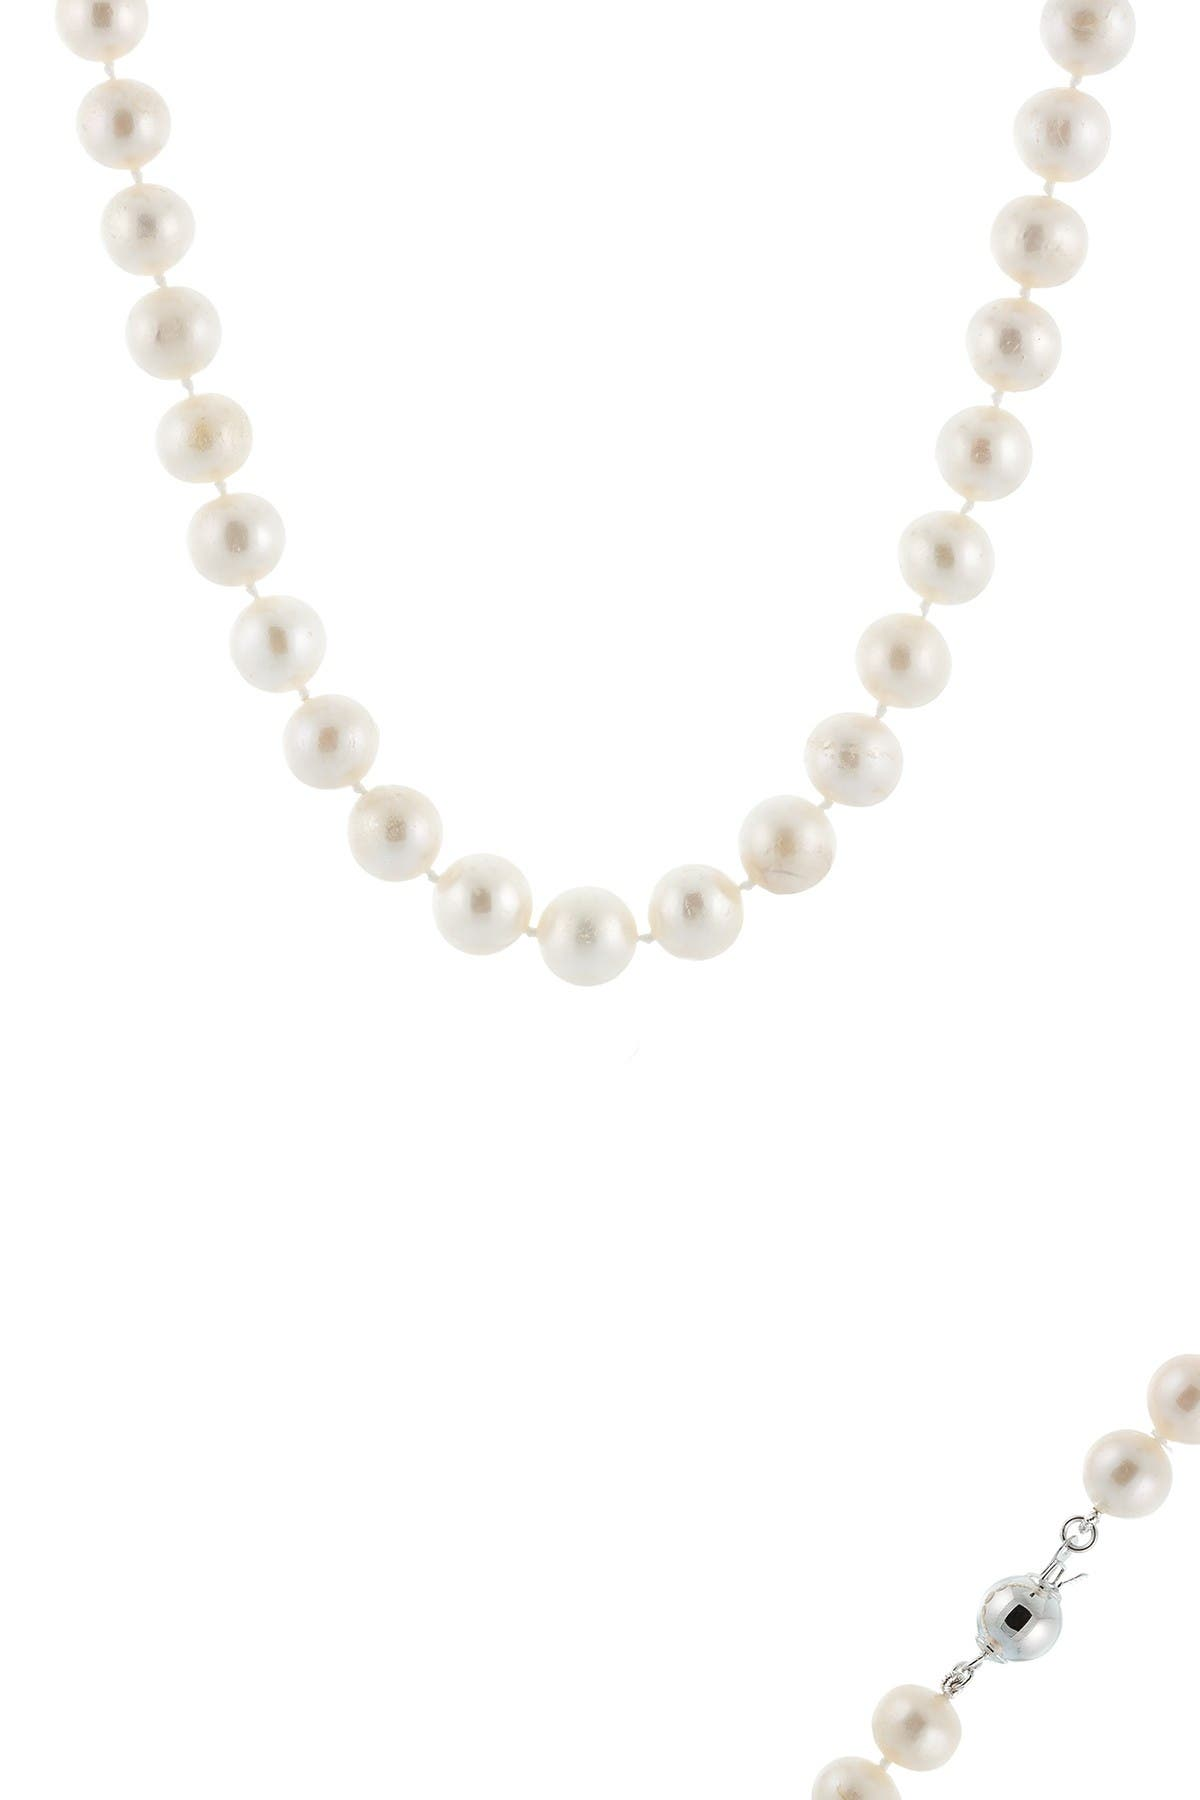 Image of Splendid Pearls Sterling Silver 9-10mm Cultured Freshwater Pearl Necklace